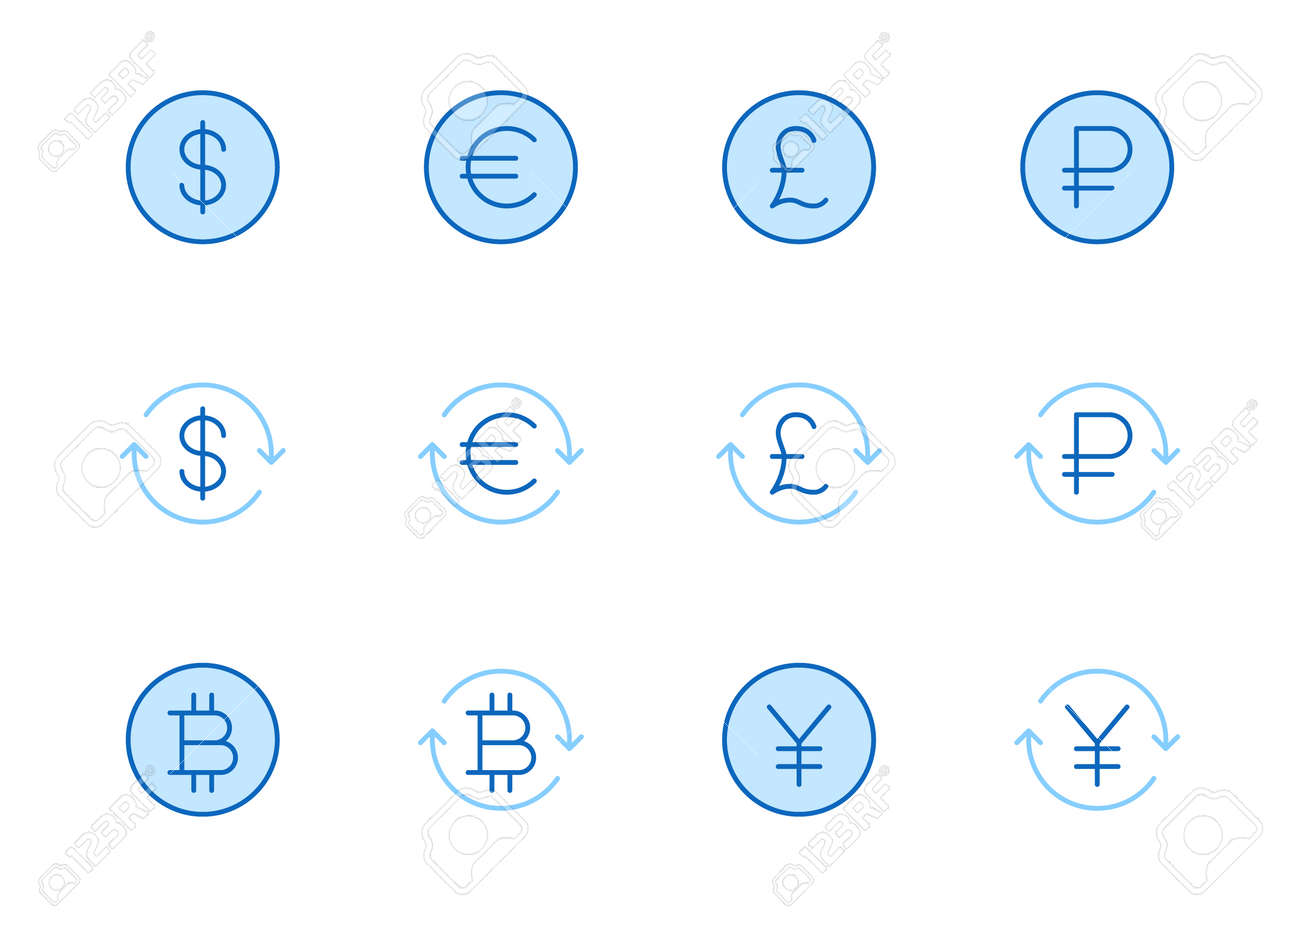 Currency exchange line icon set. Dollar, euro, pound, russian ruble, yen, bitcoin minimal vector illustration. Simple outline money signs for financial application. Blue color, Editable Stroke. - 160242742